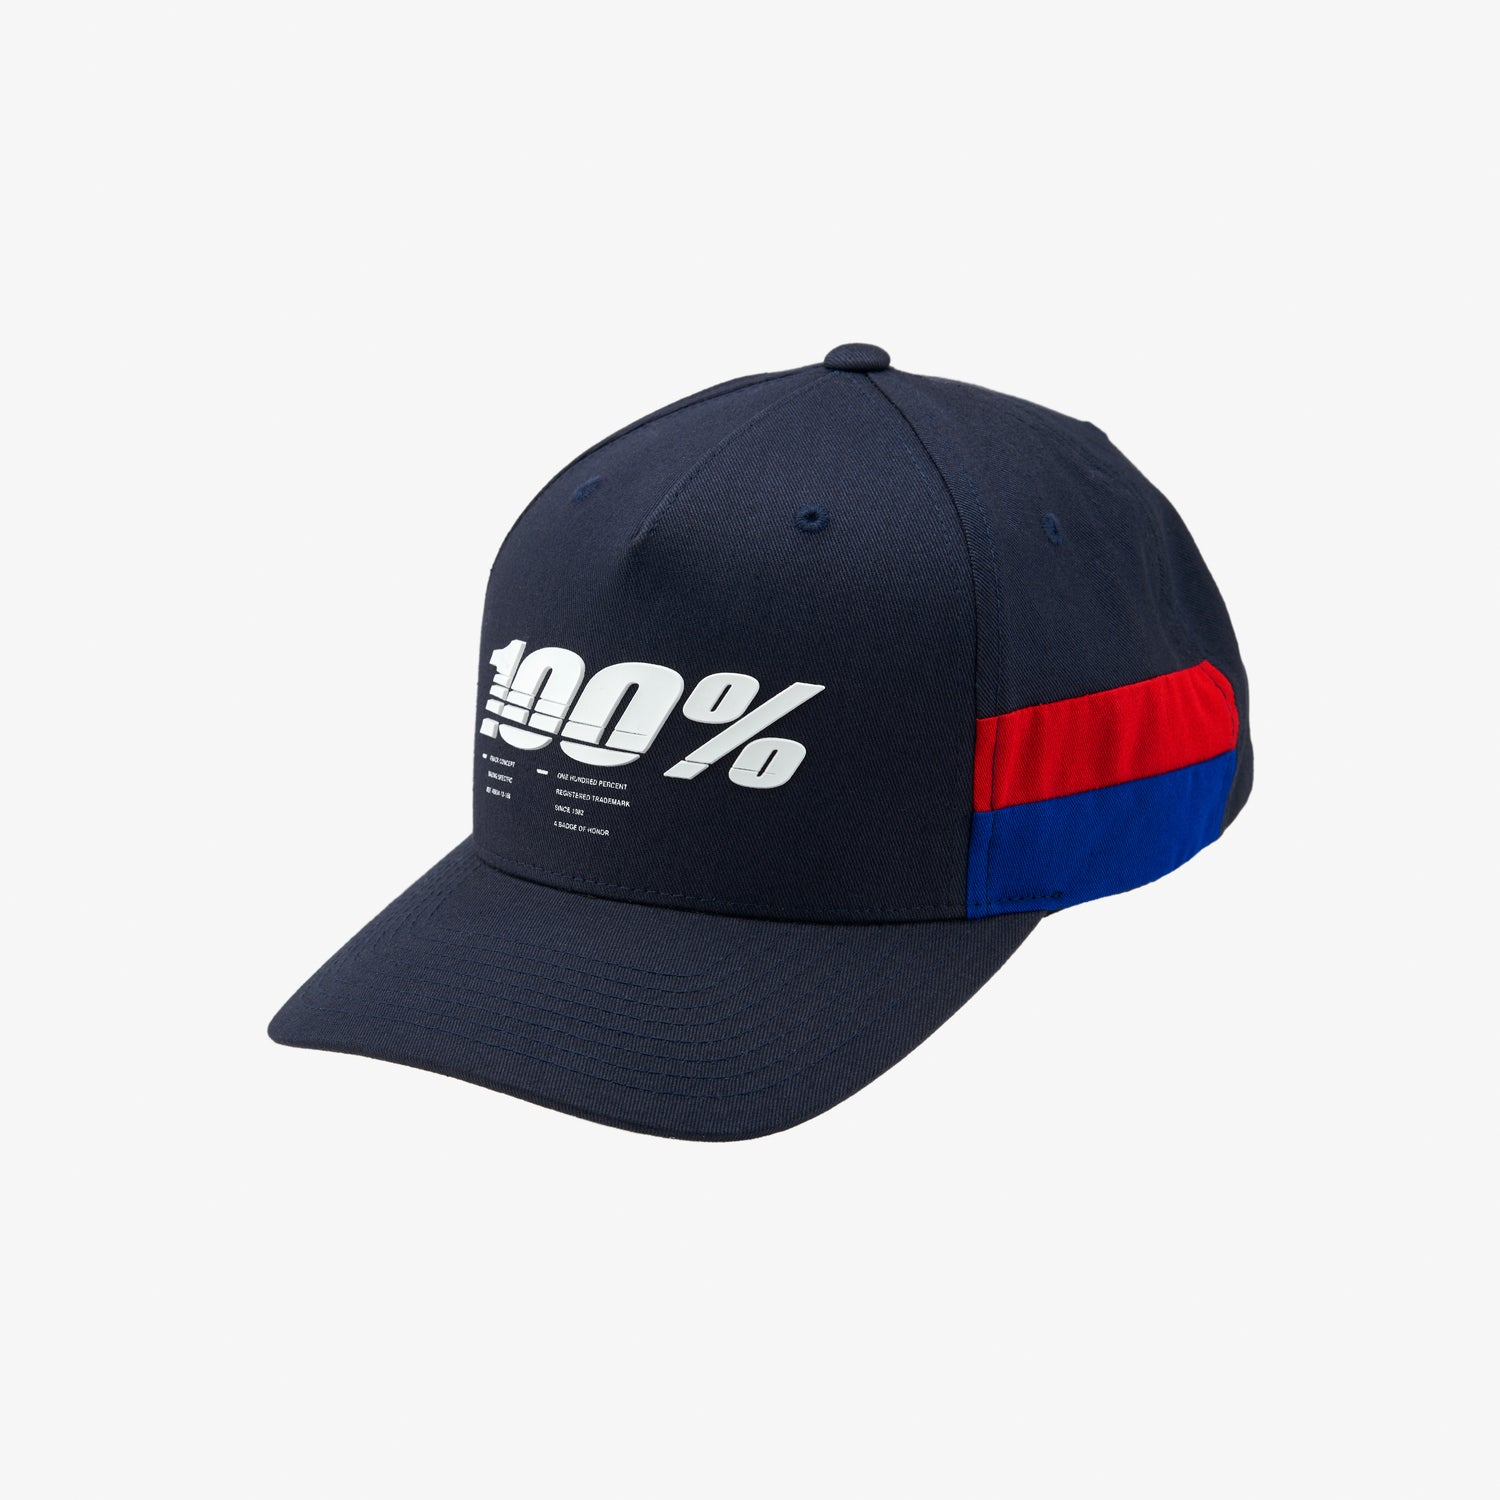 LOYAL X-Fit Snapback Hat Navy